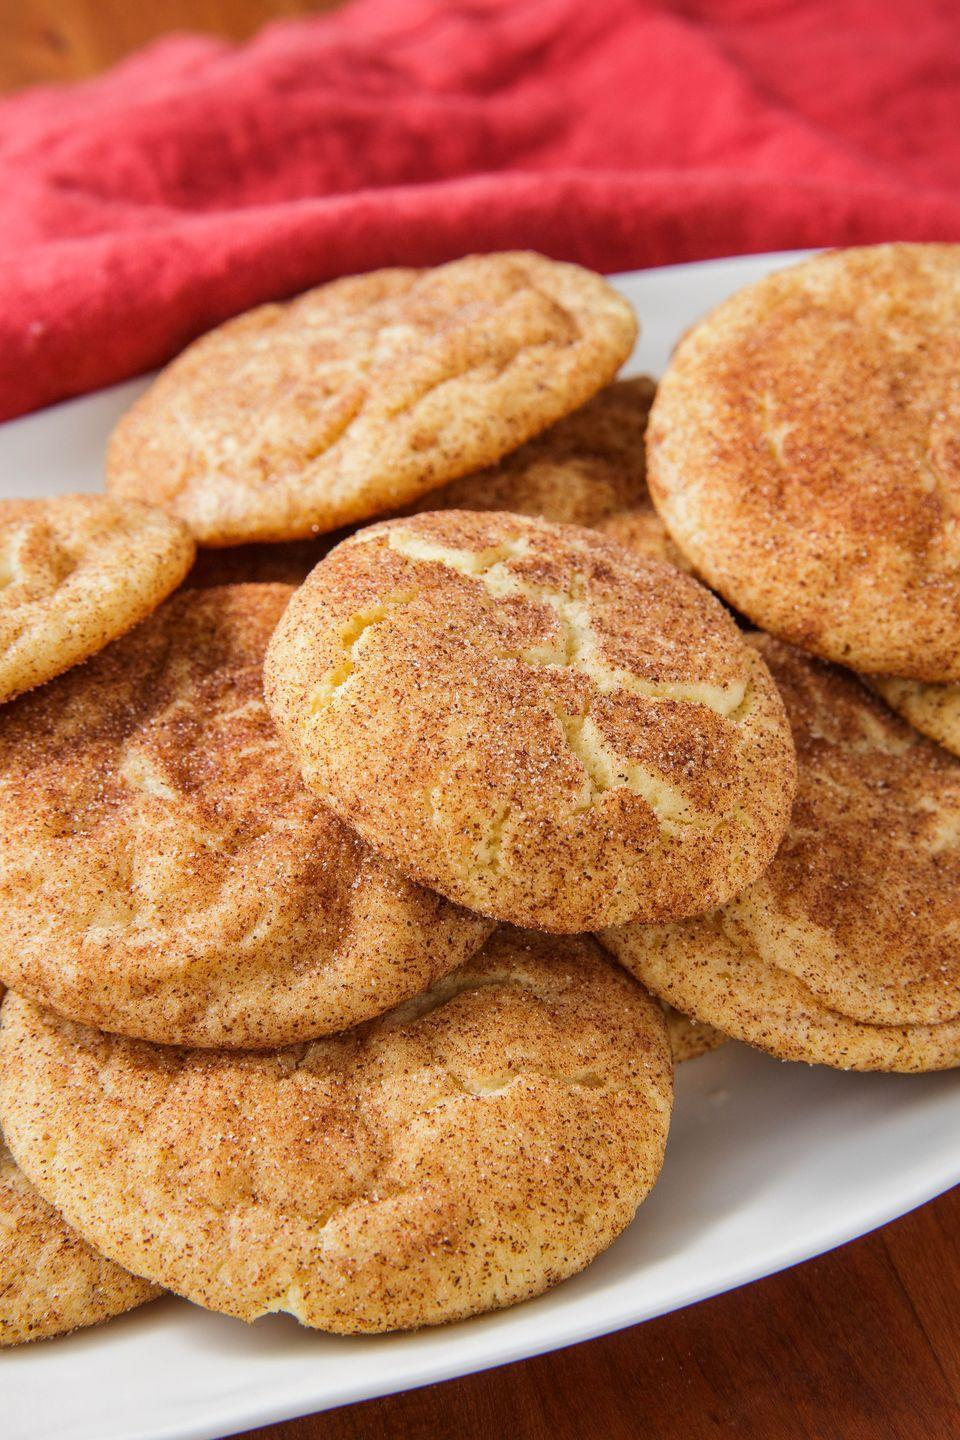 """<p>Everyone needs this classic cookie.</p><p>Get the recipe from <a href=""""https://www.delish.com/cooking/recipe-ideas/a22004581/easy-snickerdoodle-cookie-recipe/"""" rel=""""nofollow noopener"""" target=""""_blank"""" data-ylk=""""slk:Delish."""" class=""""link rapid-noclick-resp"""">Delish.</a> </p>"""